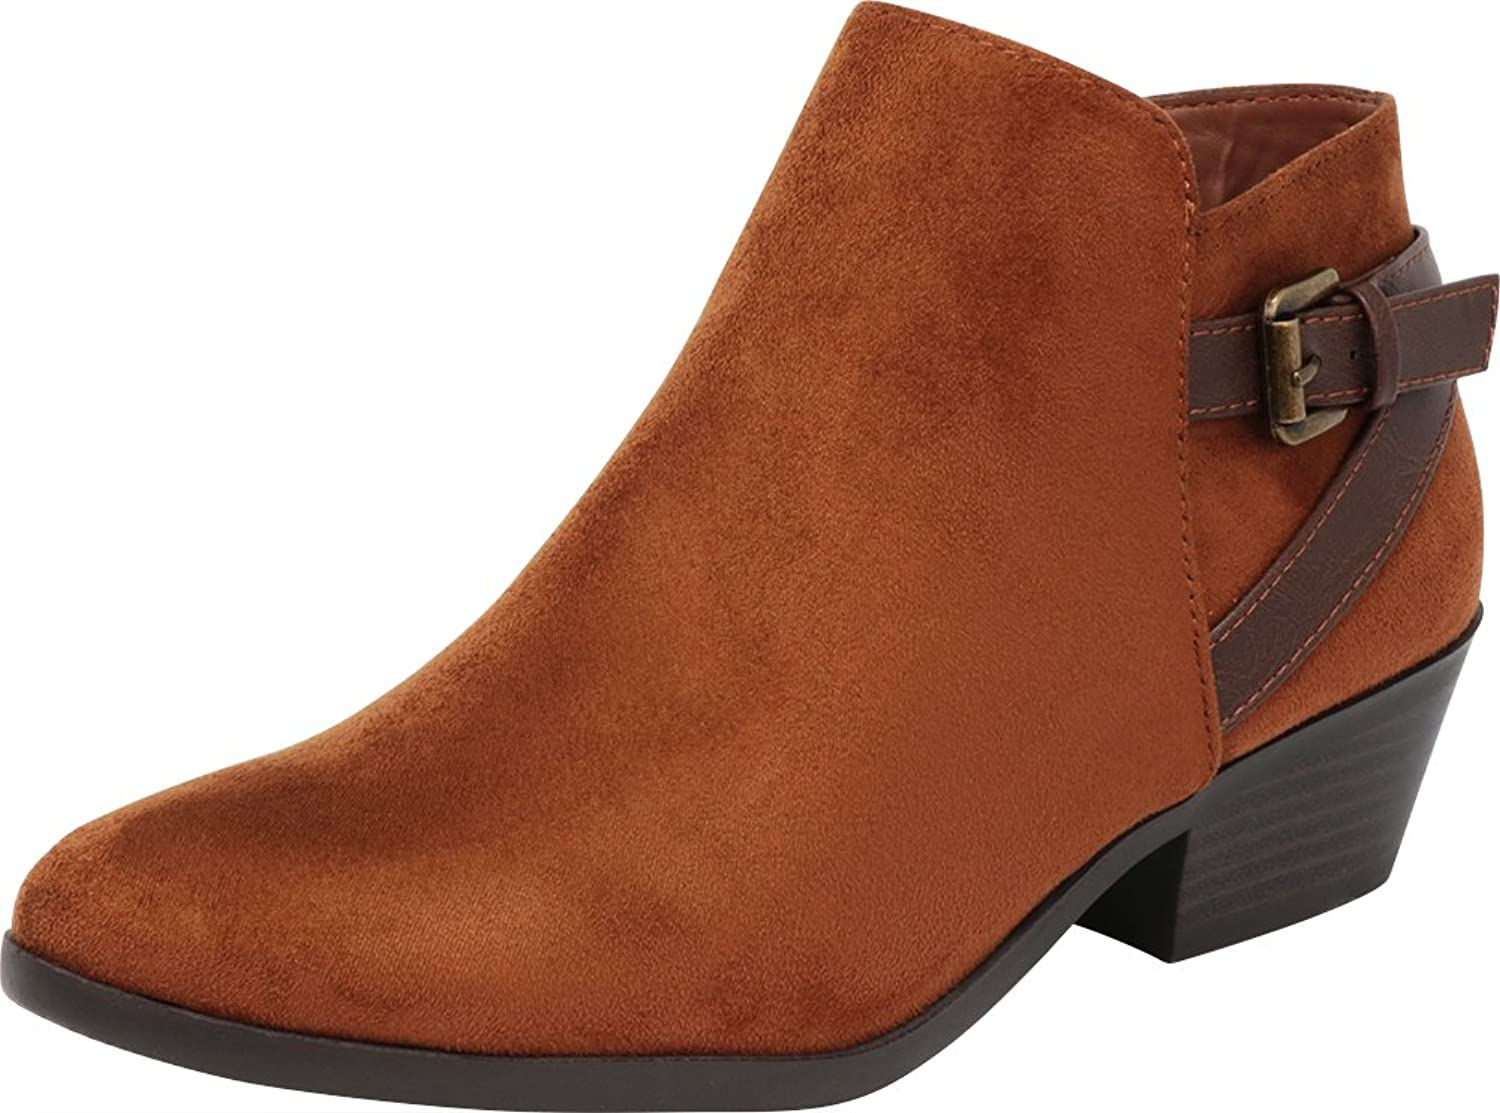 Cambridge Select Women's Closed Toe Buckled Strappy Western Cowboy Chunky Stacked Block Heel Ankle Bootie